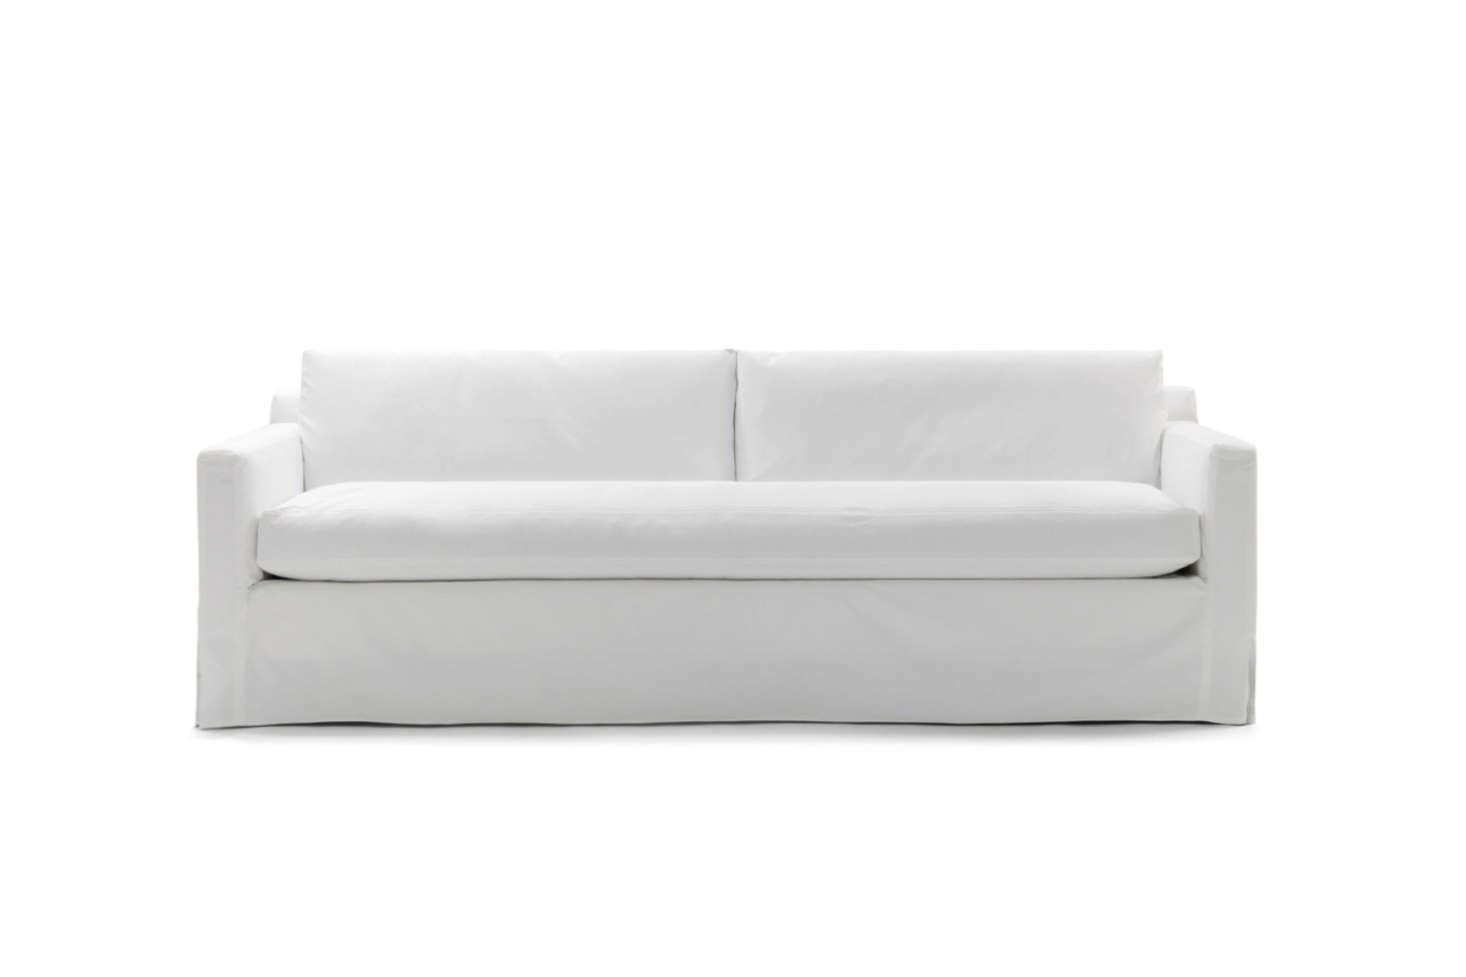 Terrific 10 Easy Pieces First Sofas Under 3 000 Remodelista Evergreenethics Interior Chair Design Evergreenethicsorg